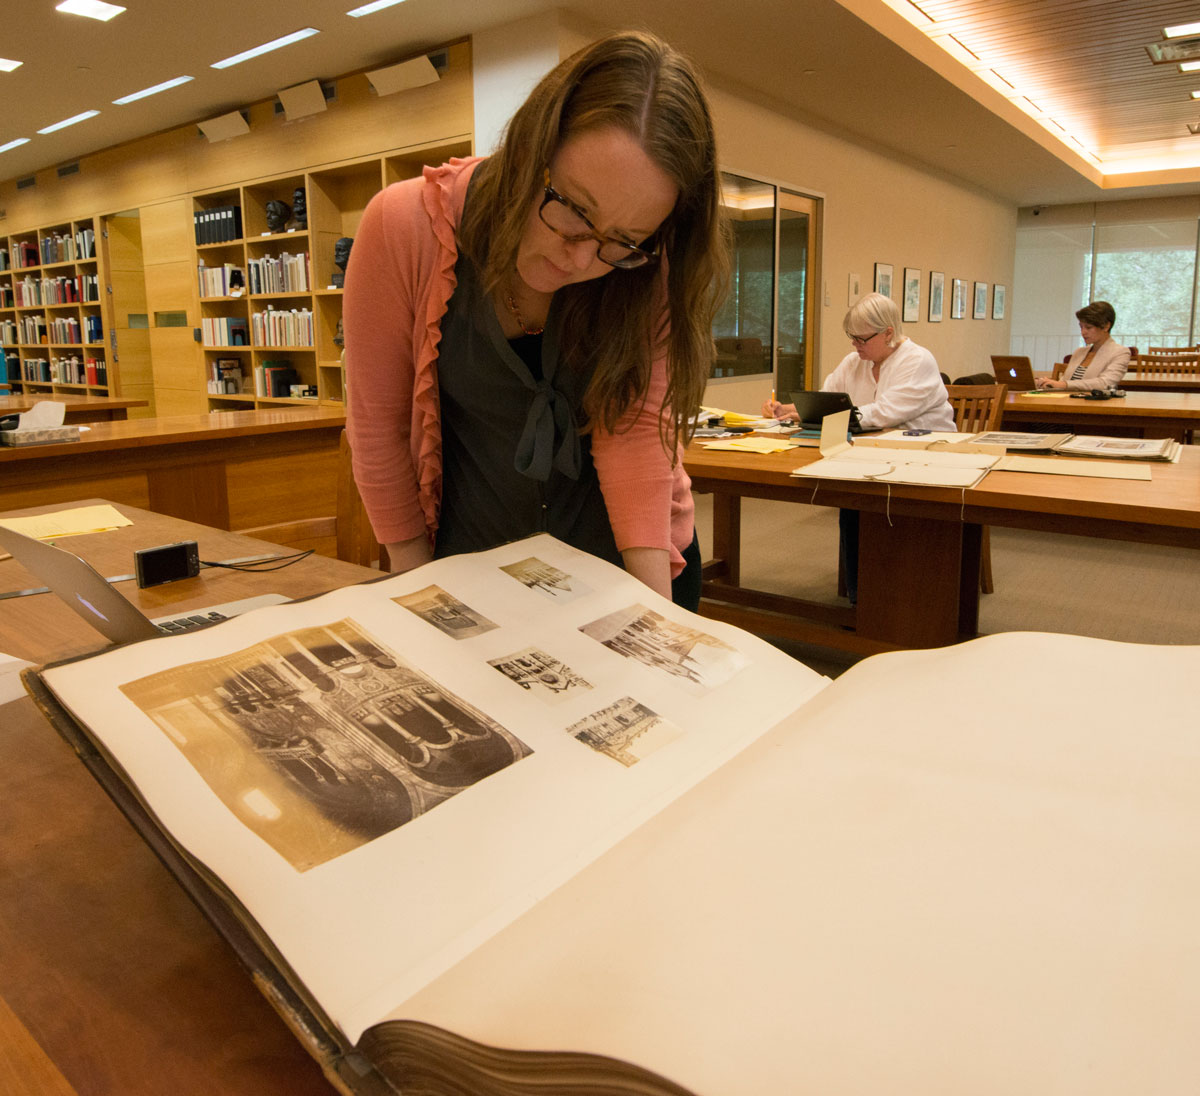 Researchers in the Ransom Center's Reading Room. Photo by Pete Smith.